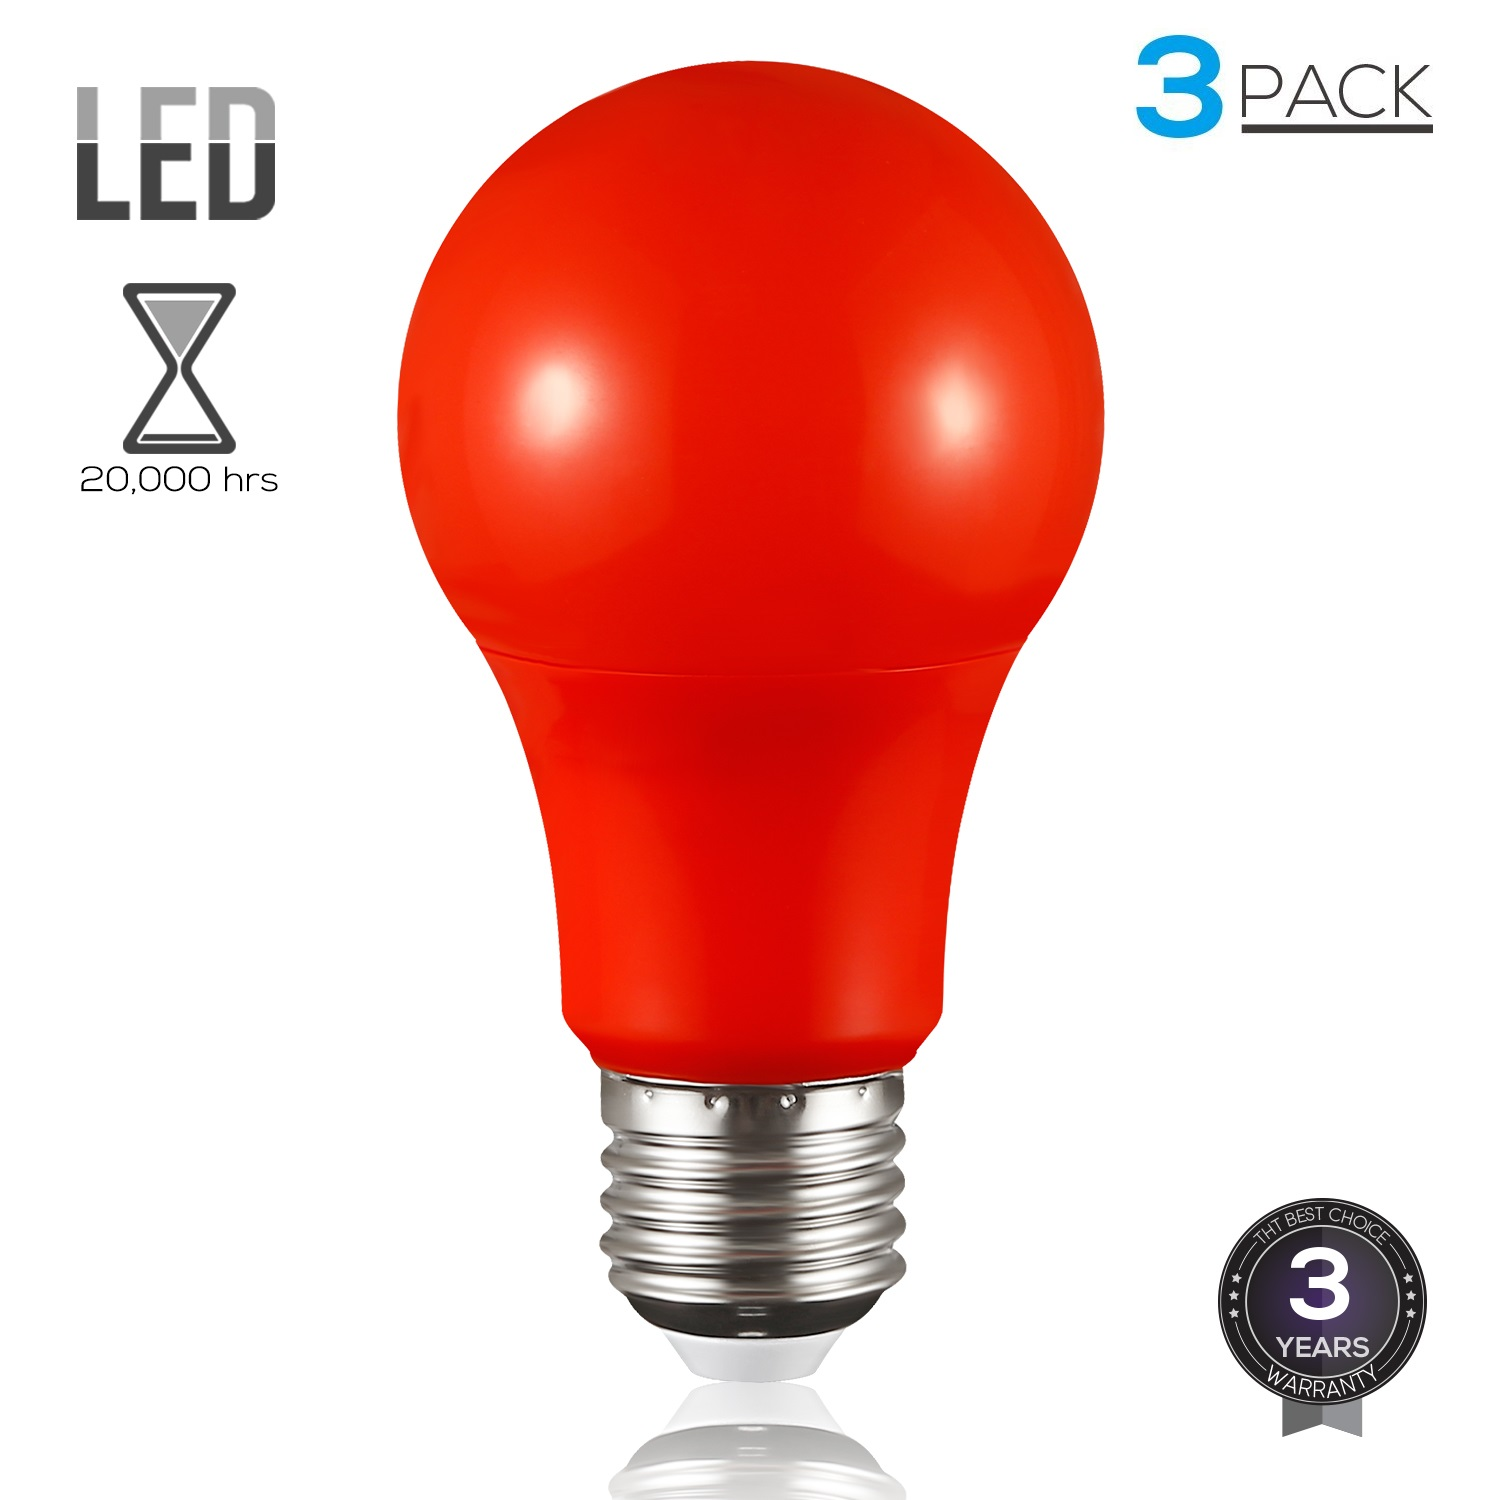 TORCHSTAR 3 Pack Red LED A19 Colored Light Bulbs, E26 Medium Base, Decorations for Holiday, Non-Dimmable